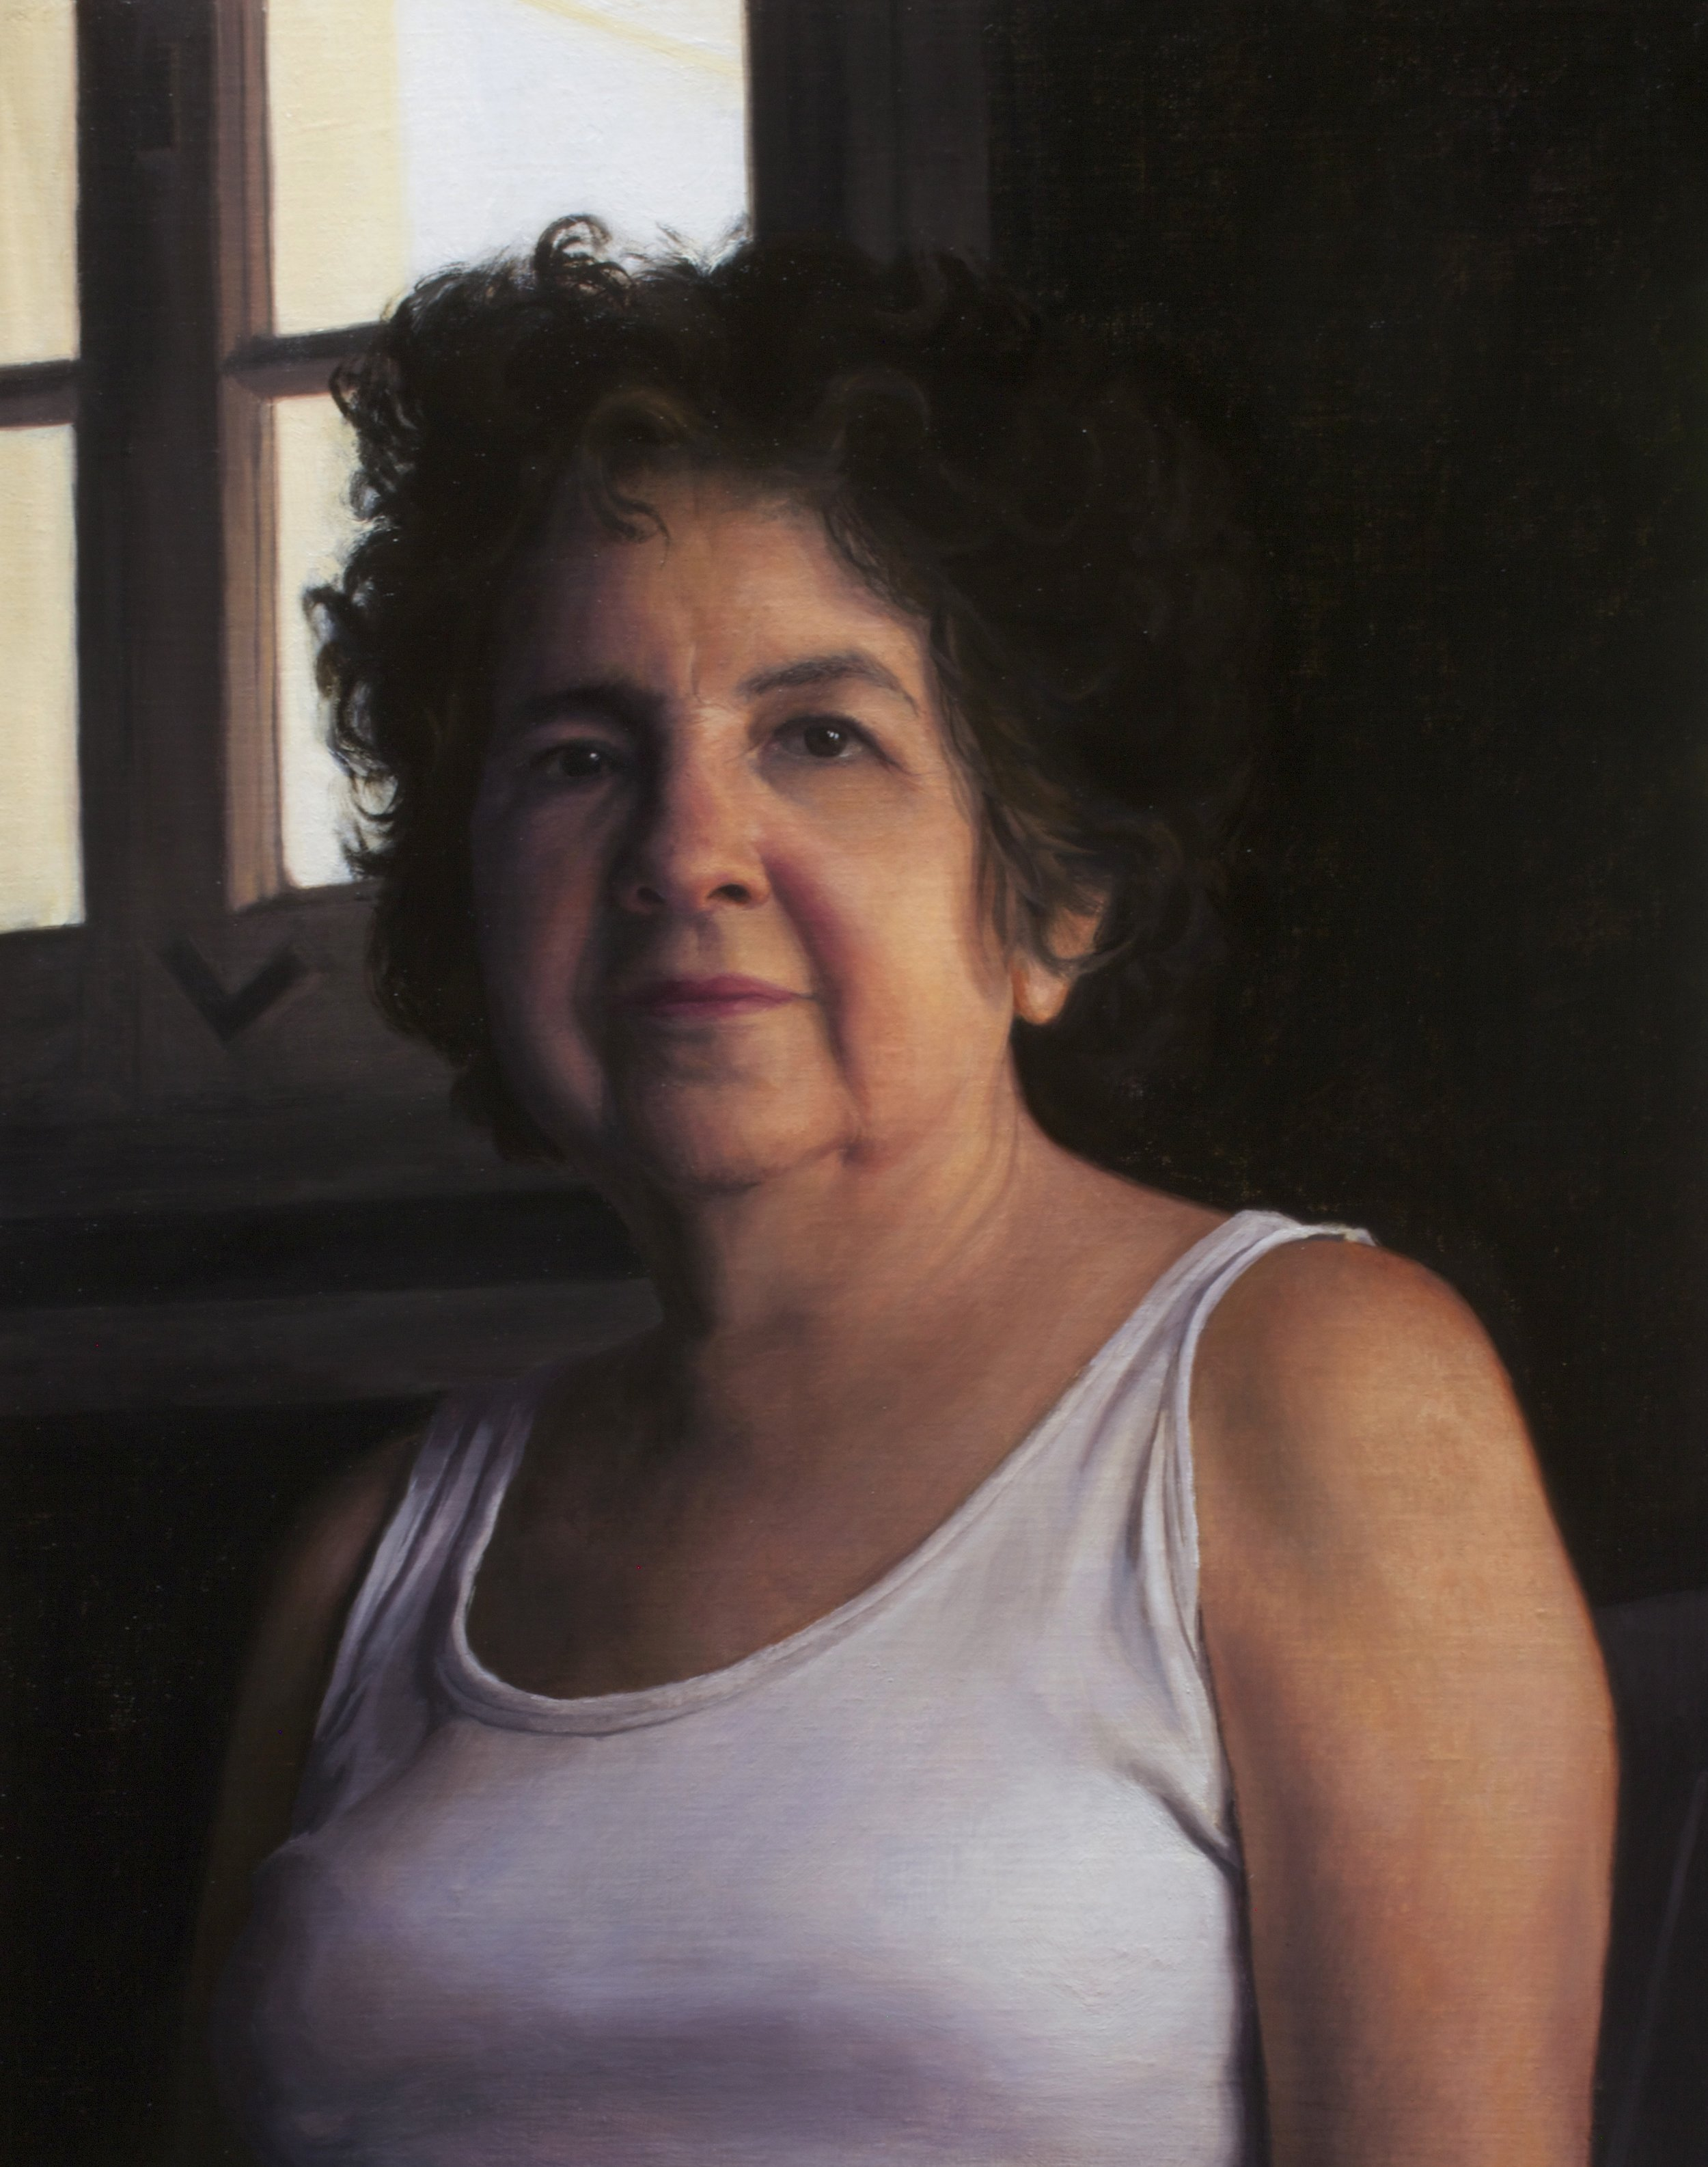 Mazatleca, oil on canvas, 2016